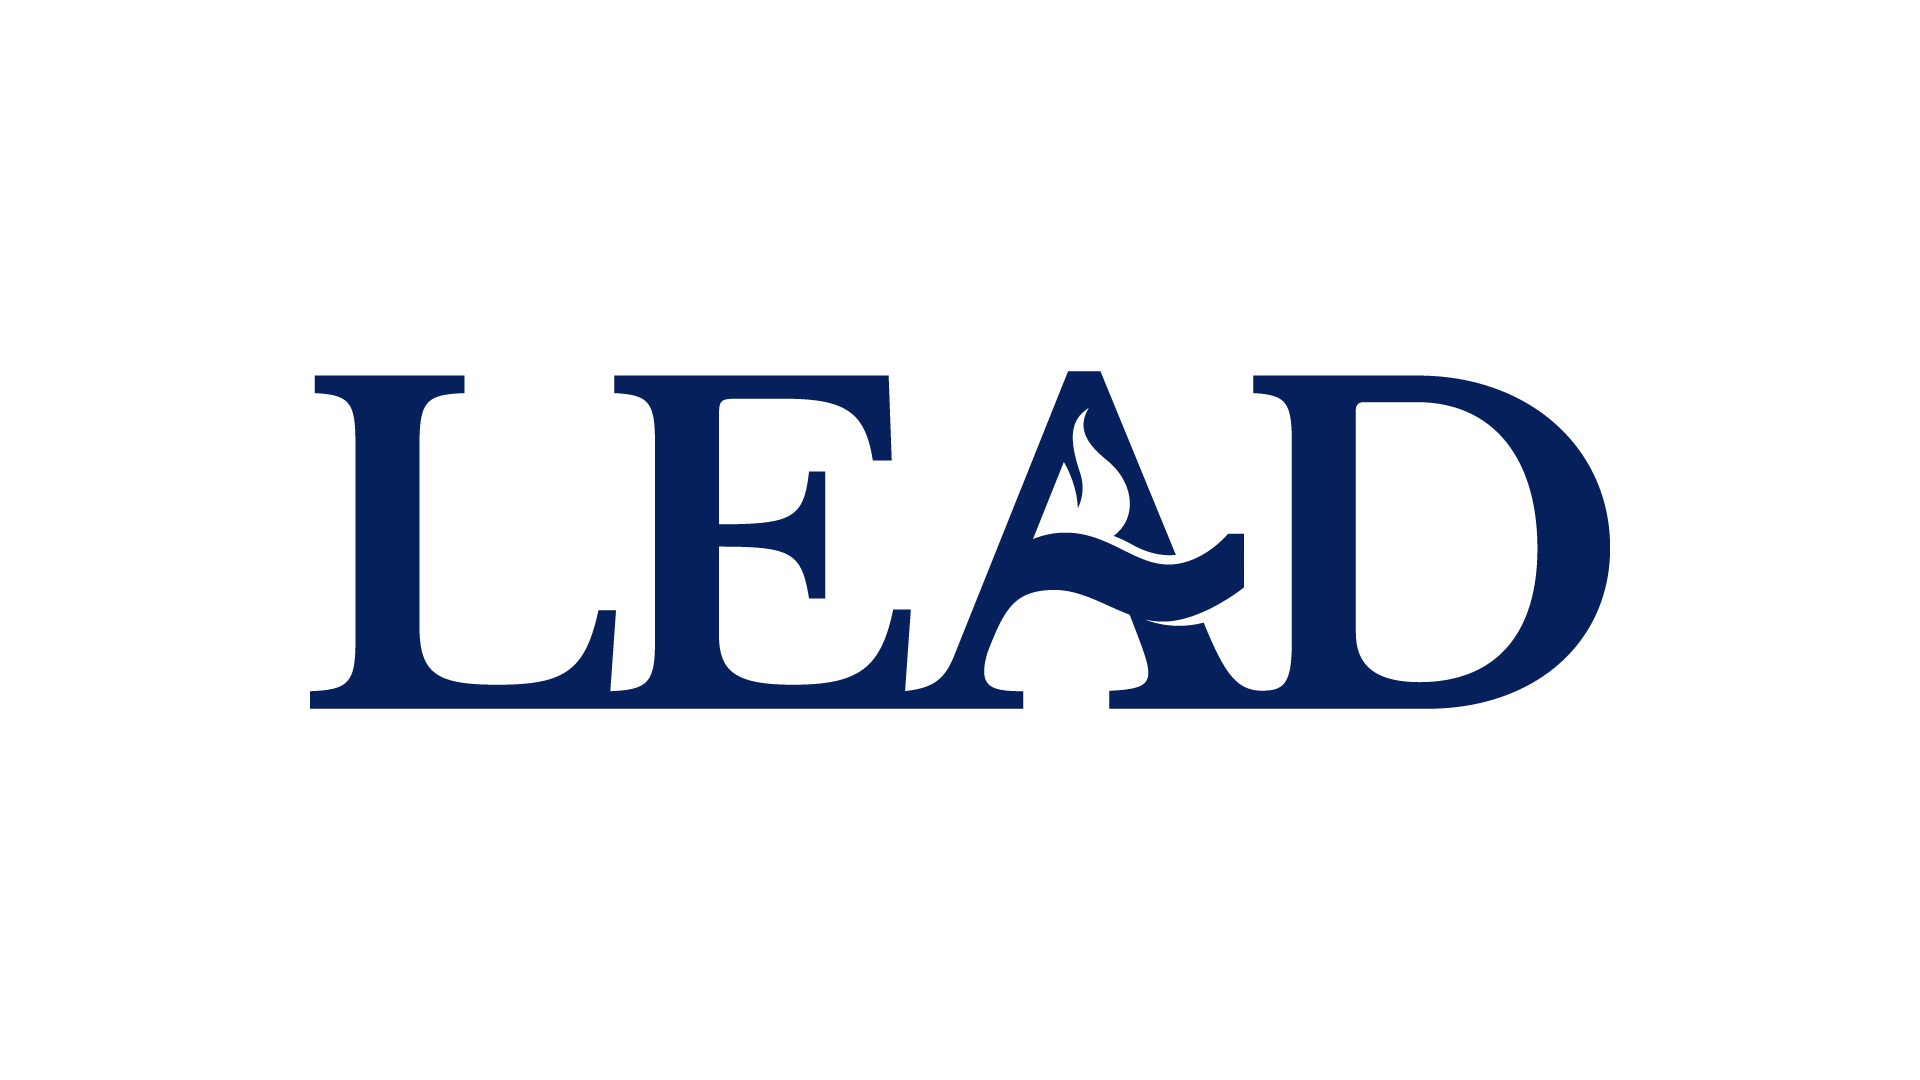 LEAD logo shown